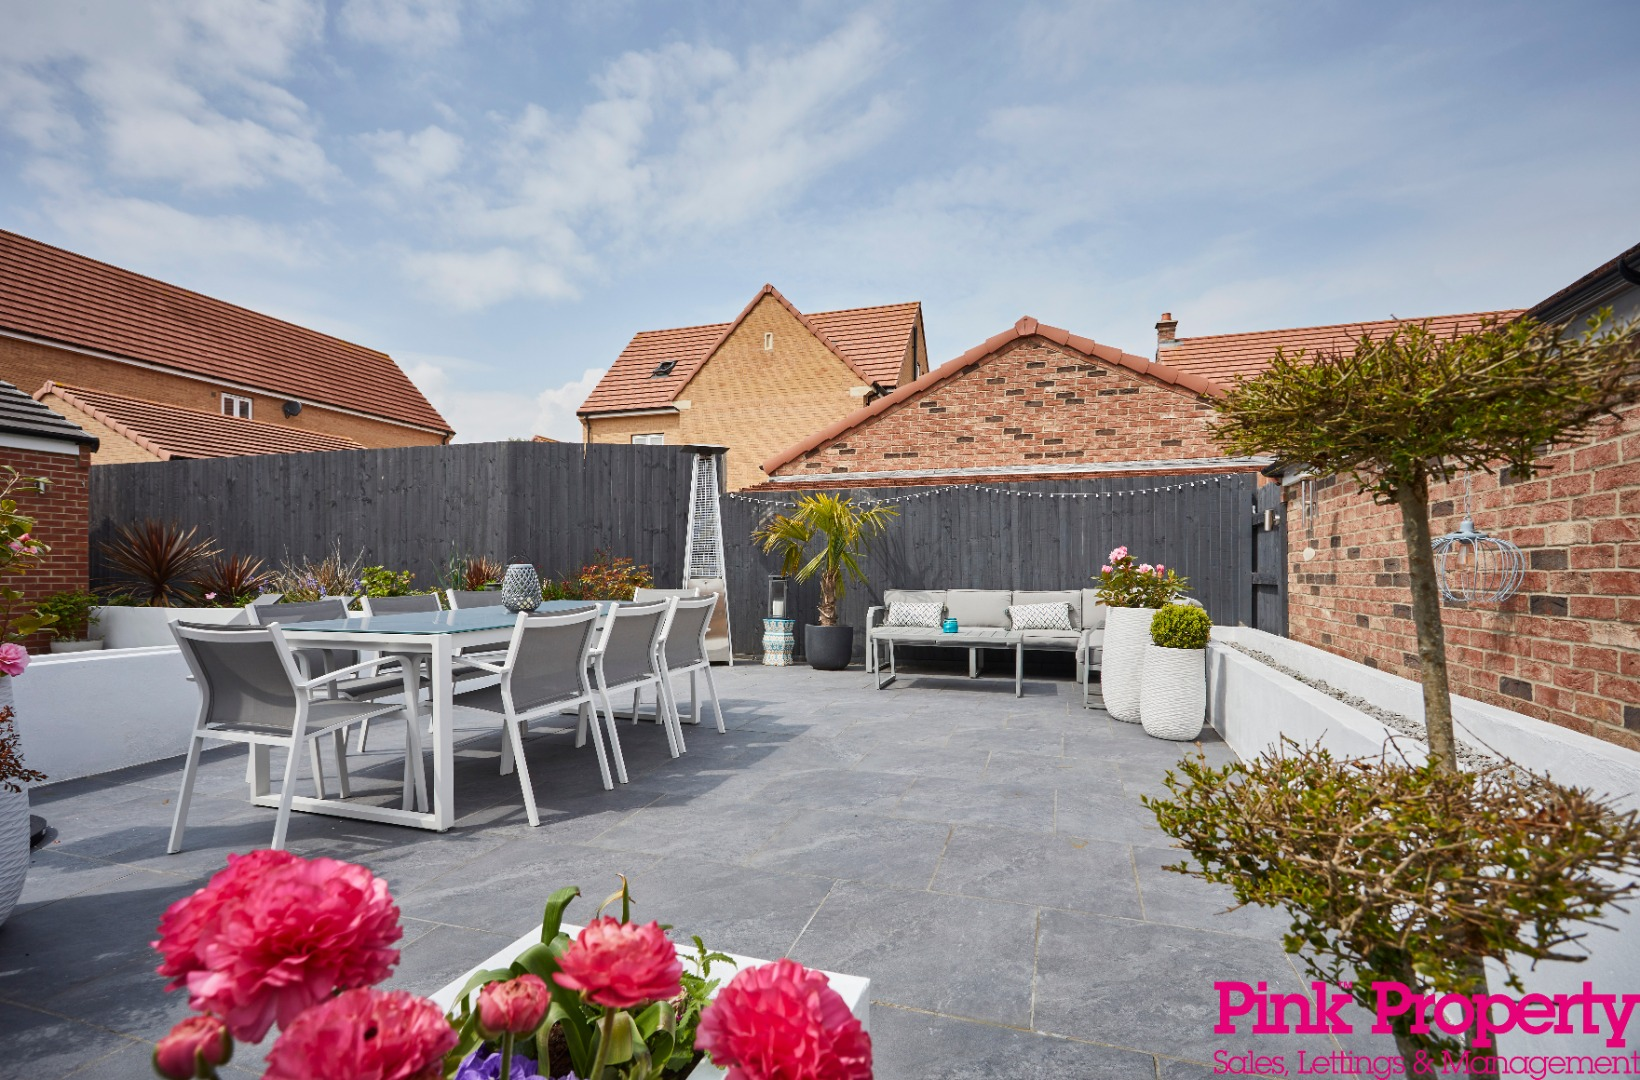 5 bed house for sale in Nursery Close, Swanland, HU14 6